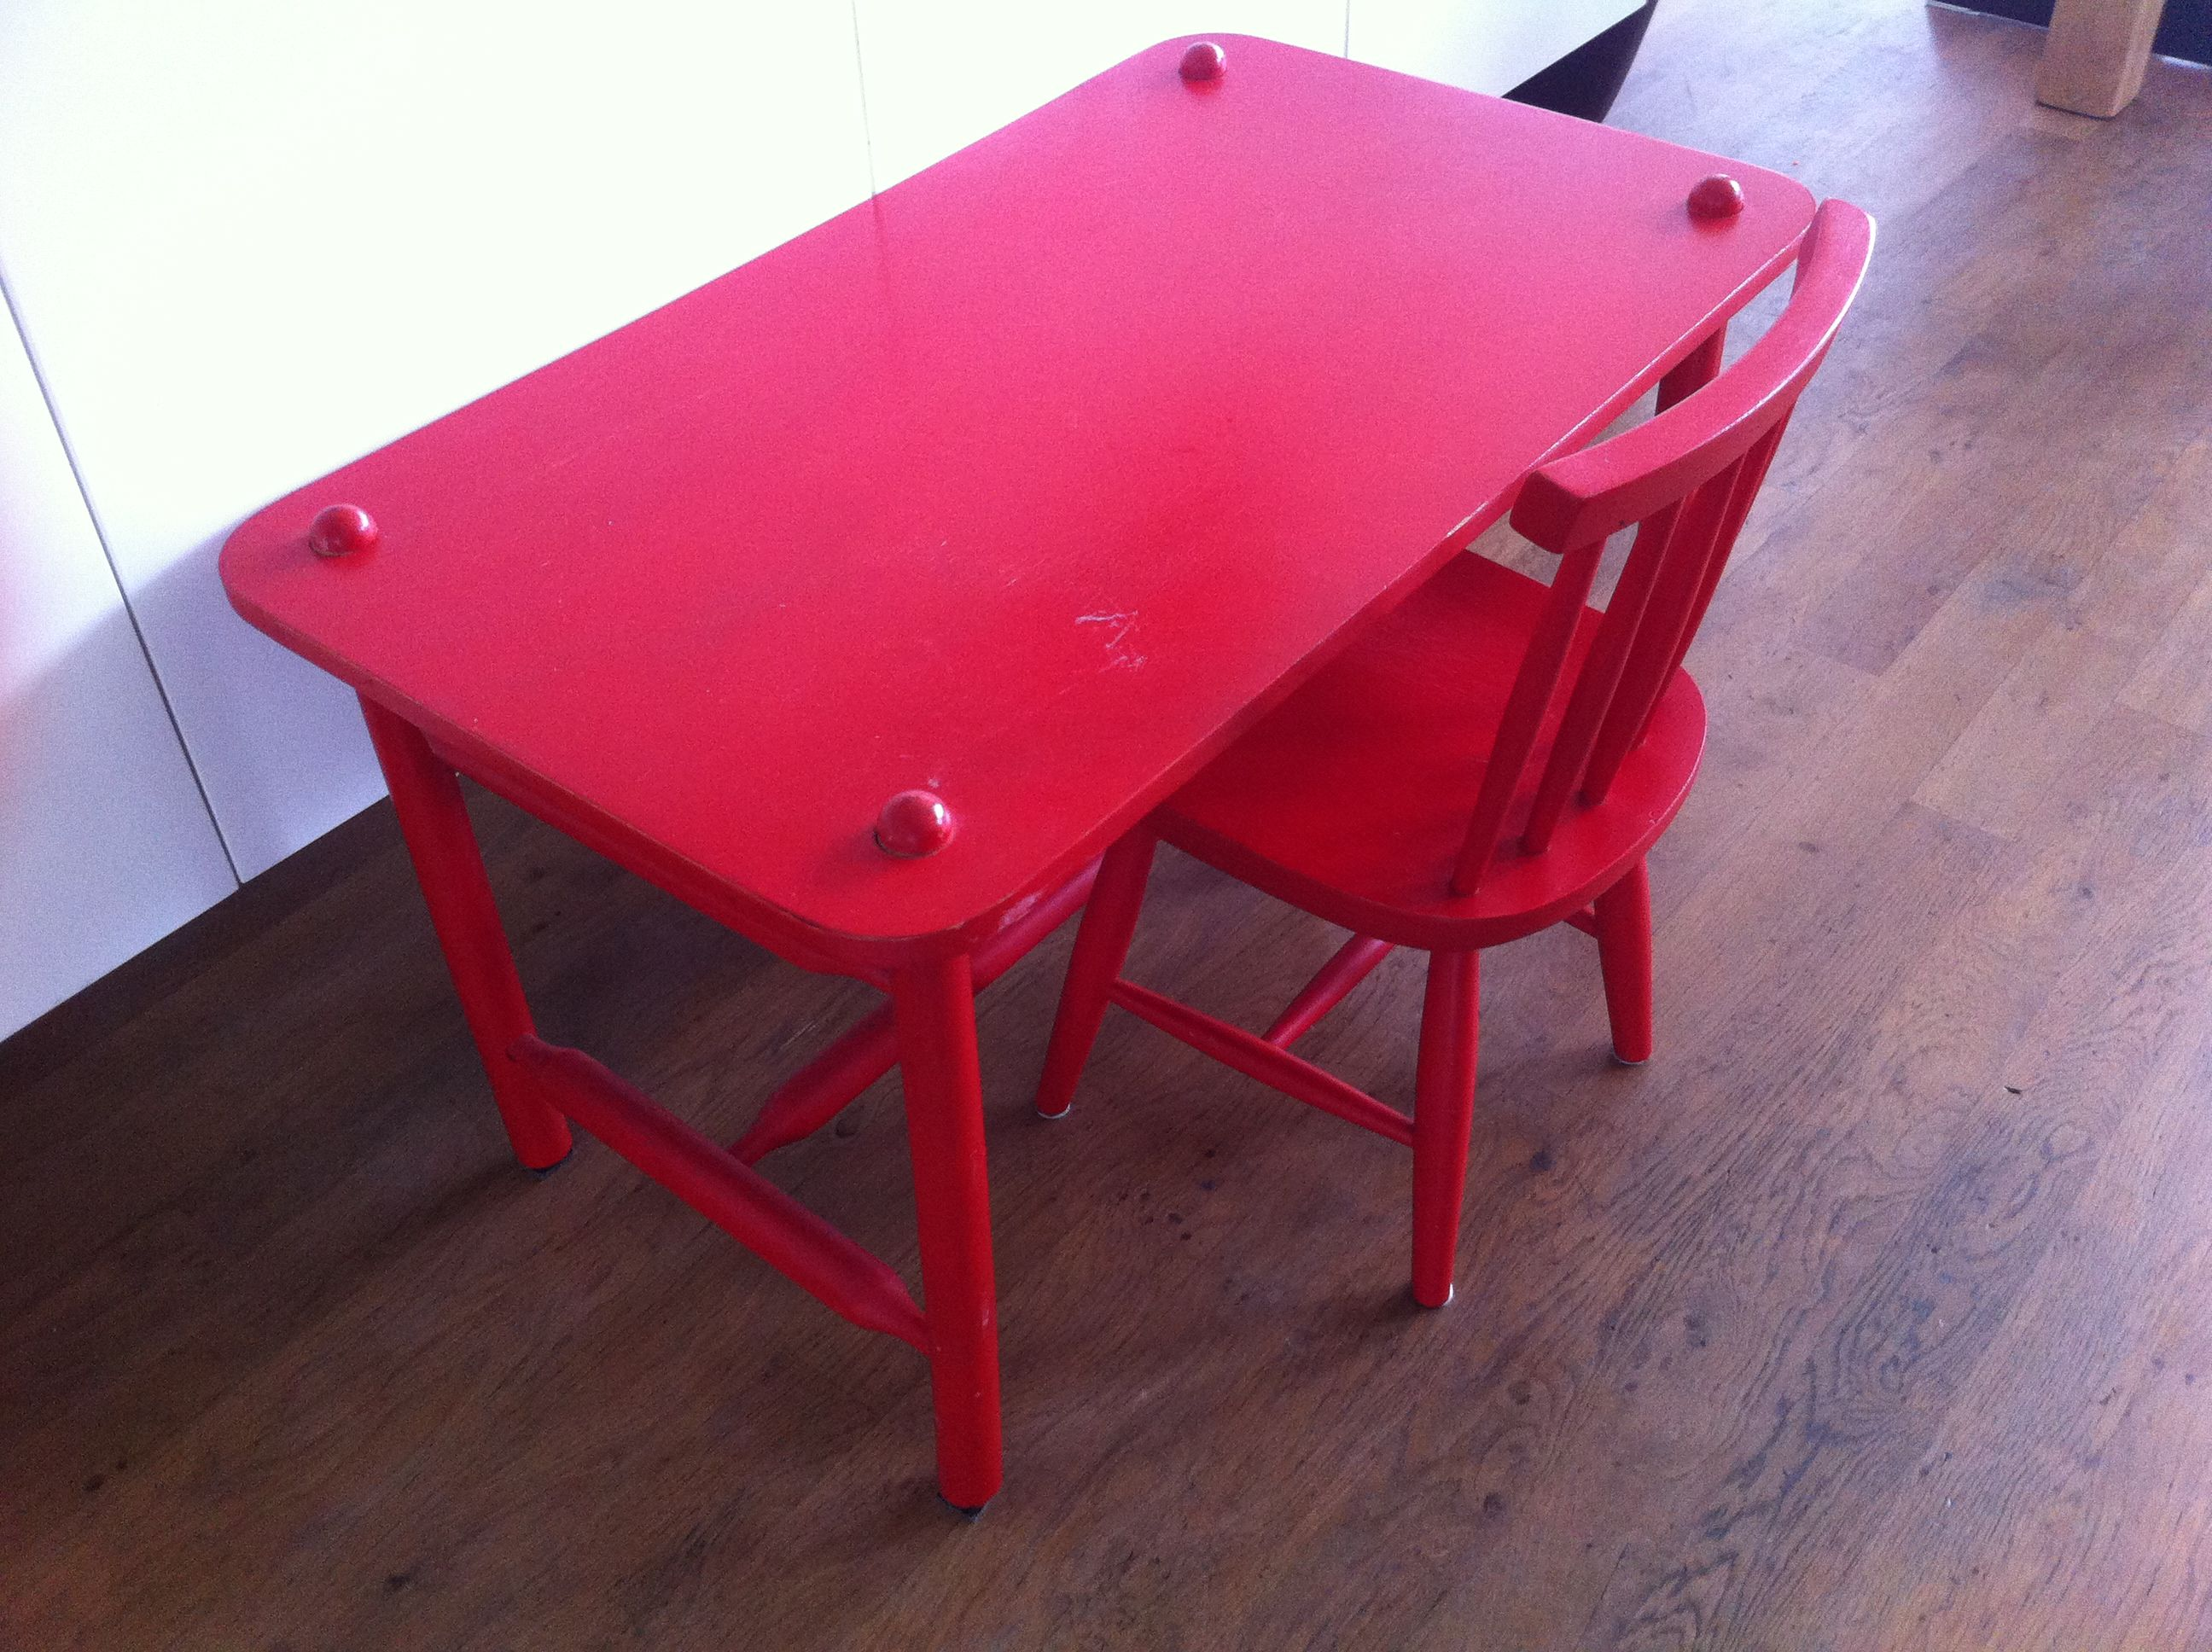 Vintage Ikea Stool Karin Mobring 1963 Ikea Child Table Chair Www